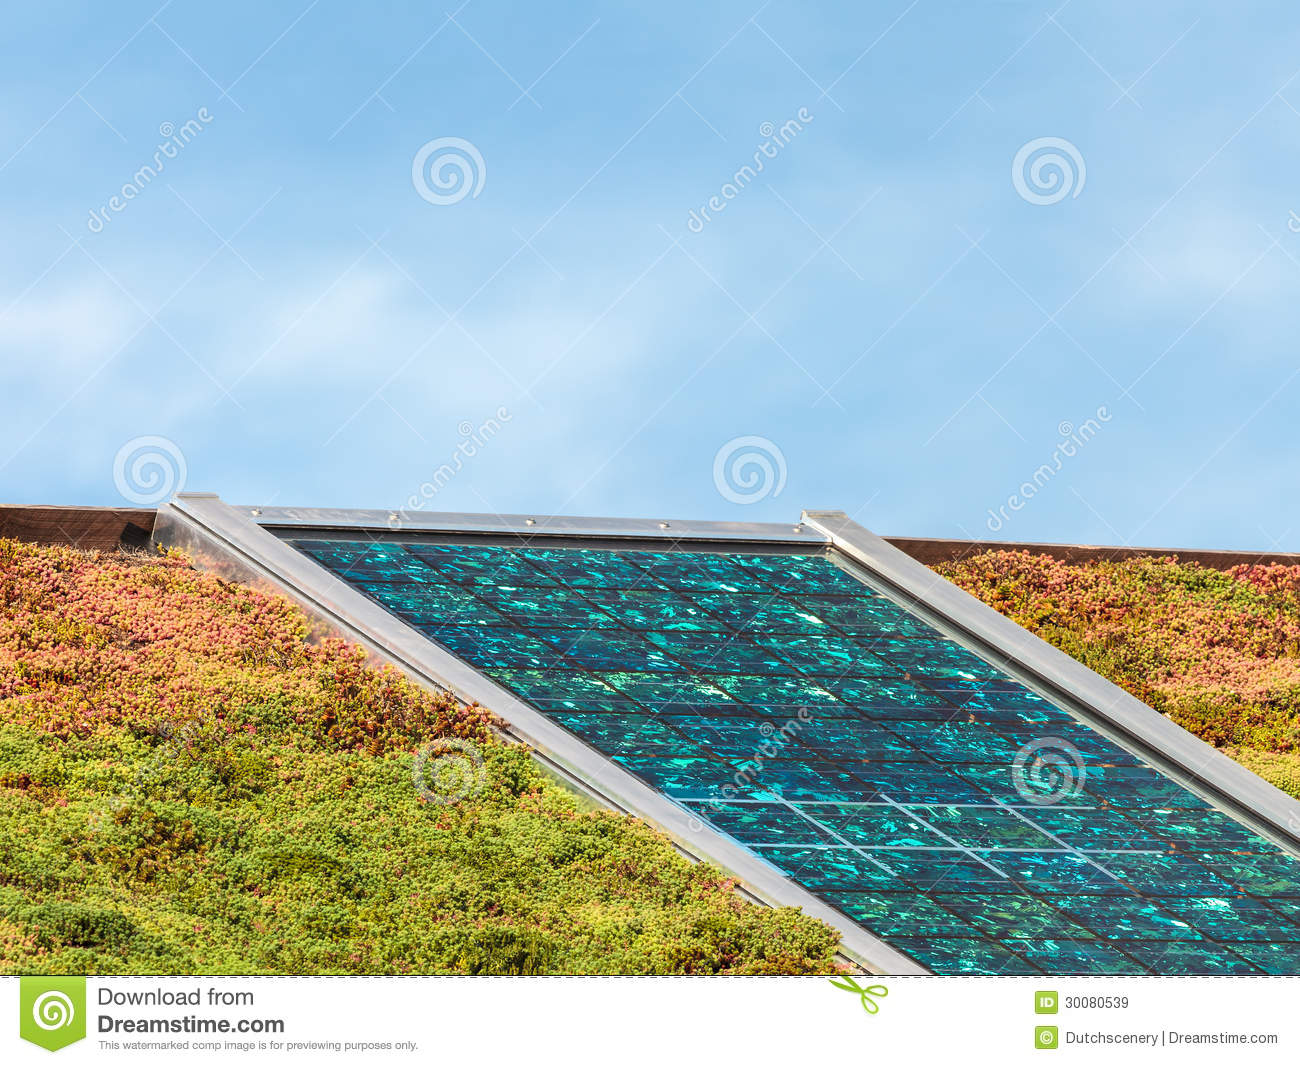 Solar Panels On A Roof Covered With Sedum For Isolation